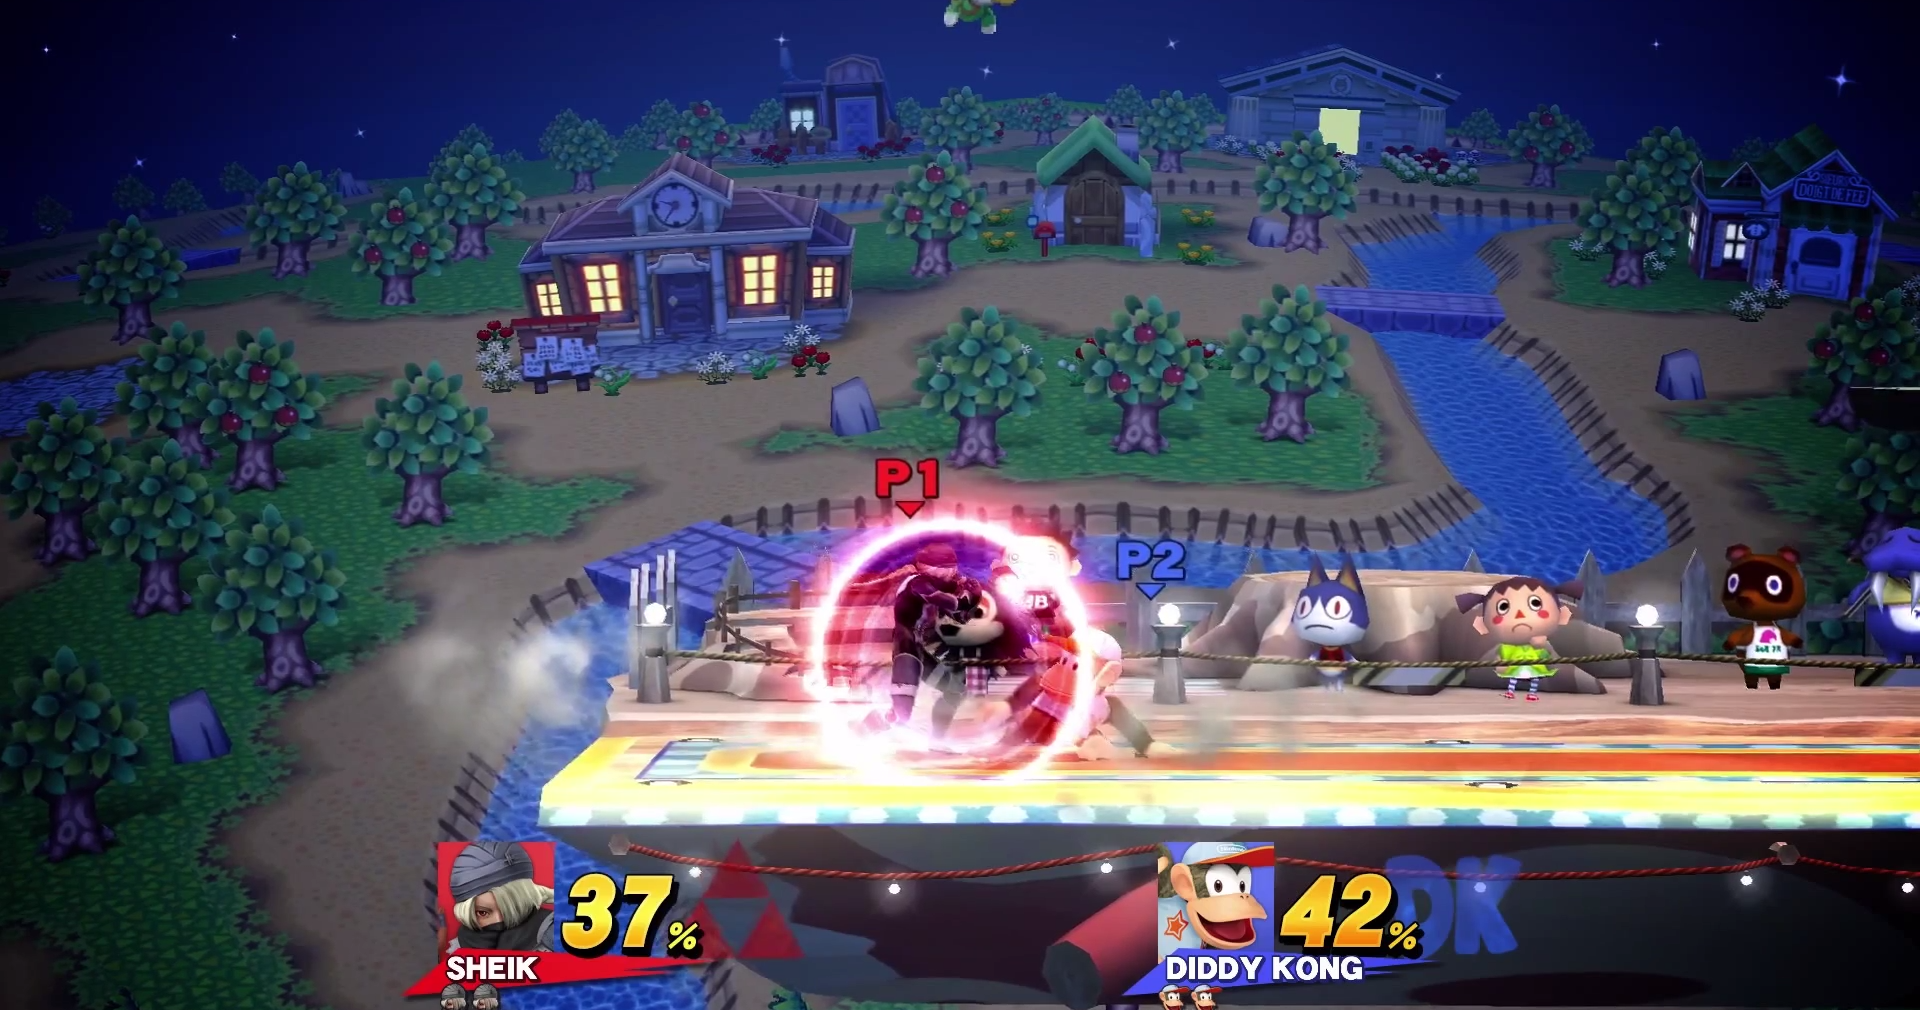 What Pros Have To Think About In Every Smash Bros. Match